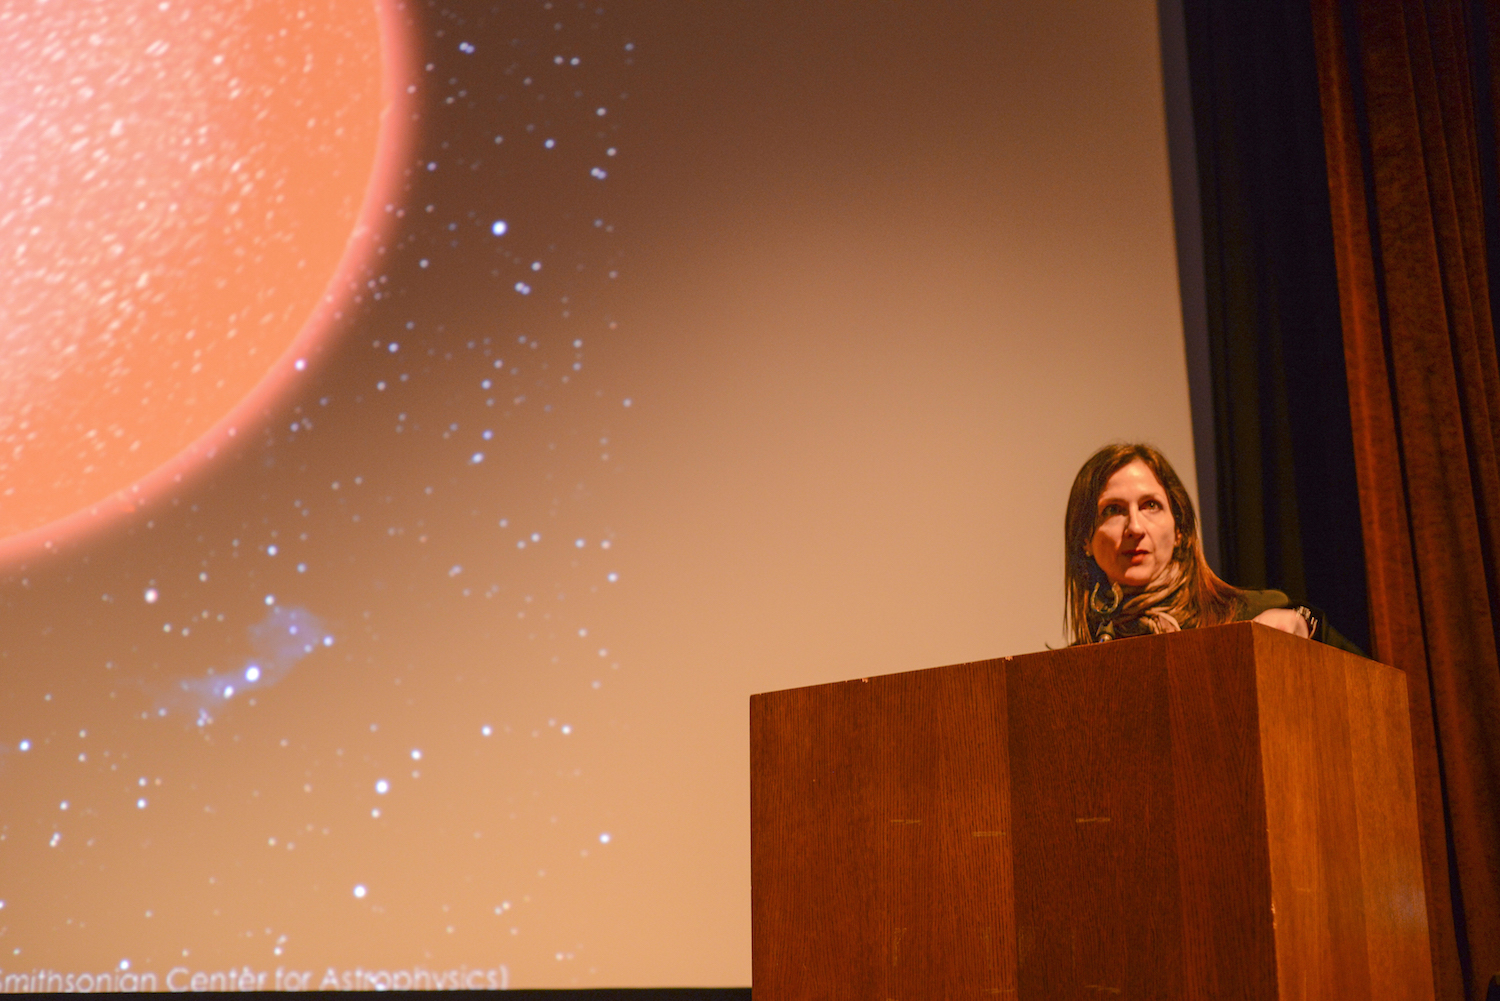 """Seageris apioneerinthe field of exoplanets, specifically in characterizing the atmospheres and searching for life on those distant worlds. Her talk addressedthe age-old question: """"Are we alone?"""""""